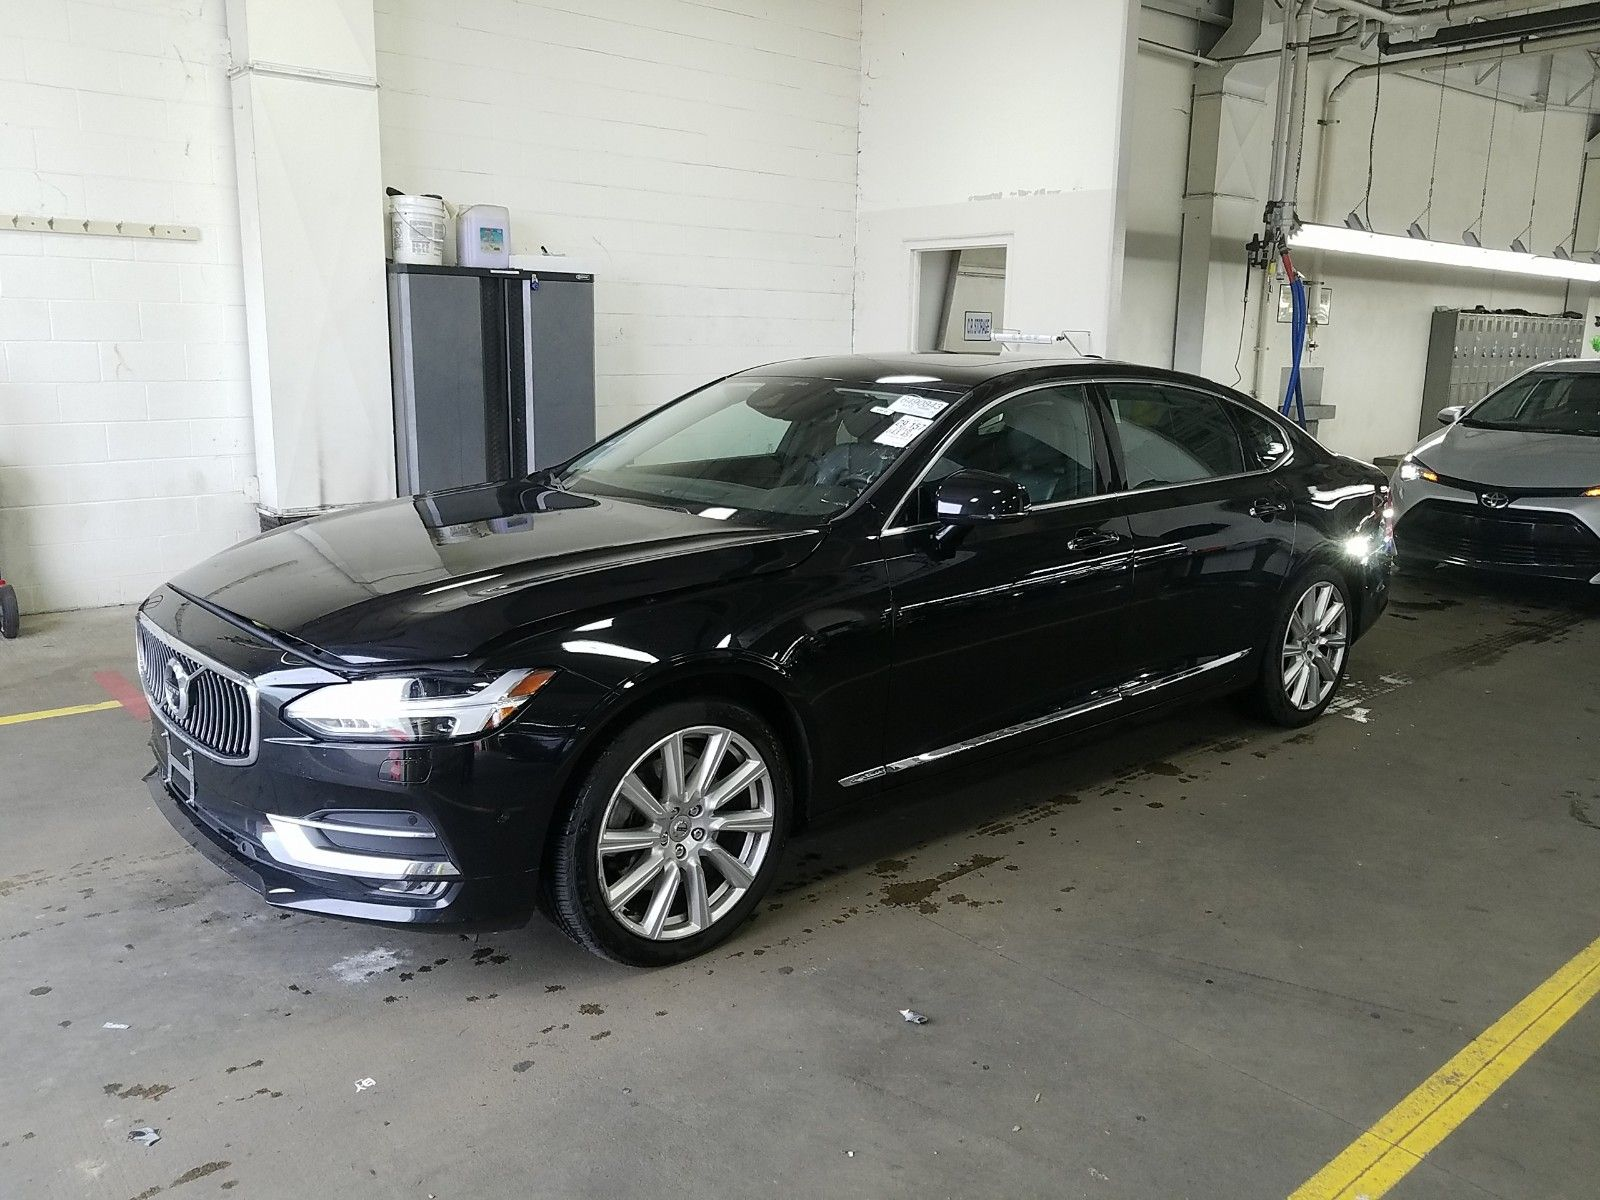 2018 Volvo S90 2.0. Lot 99921075478 Vin LVY992ML9JP005678